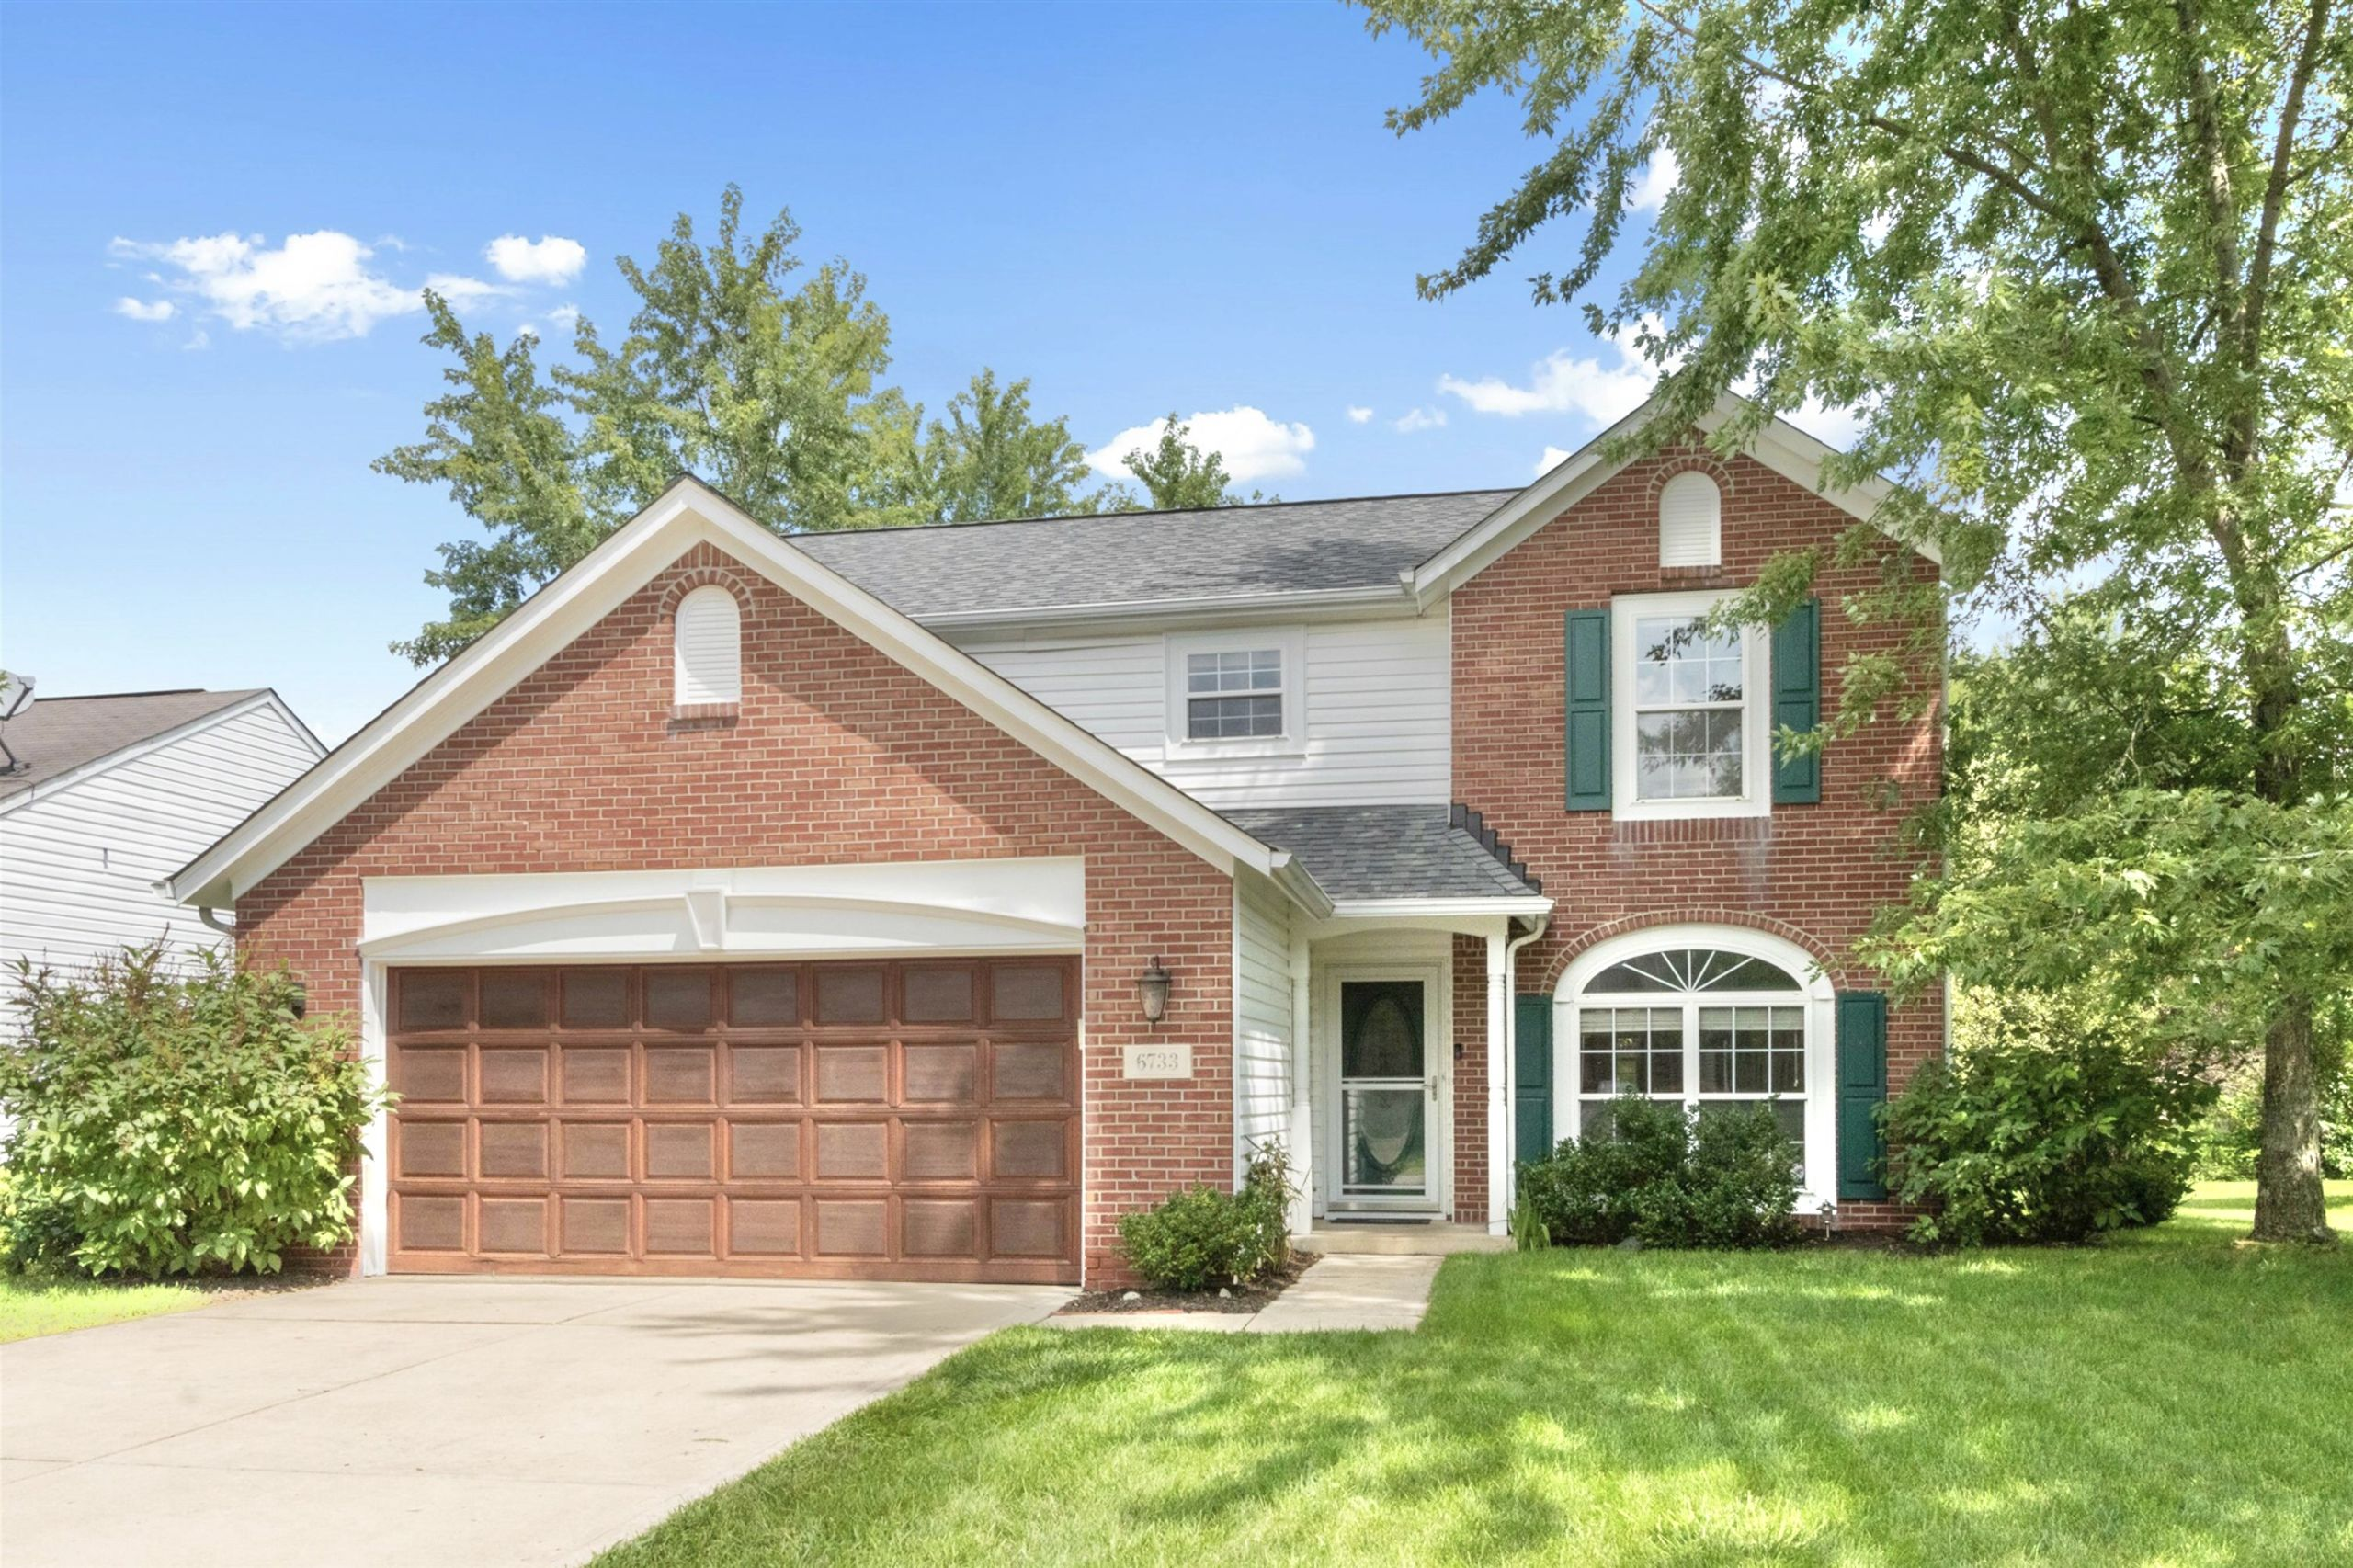 FOR SALE IN ZIONSVILLE